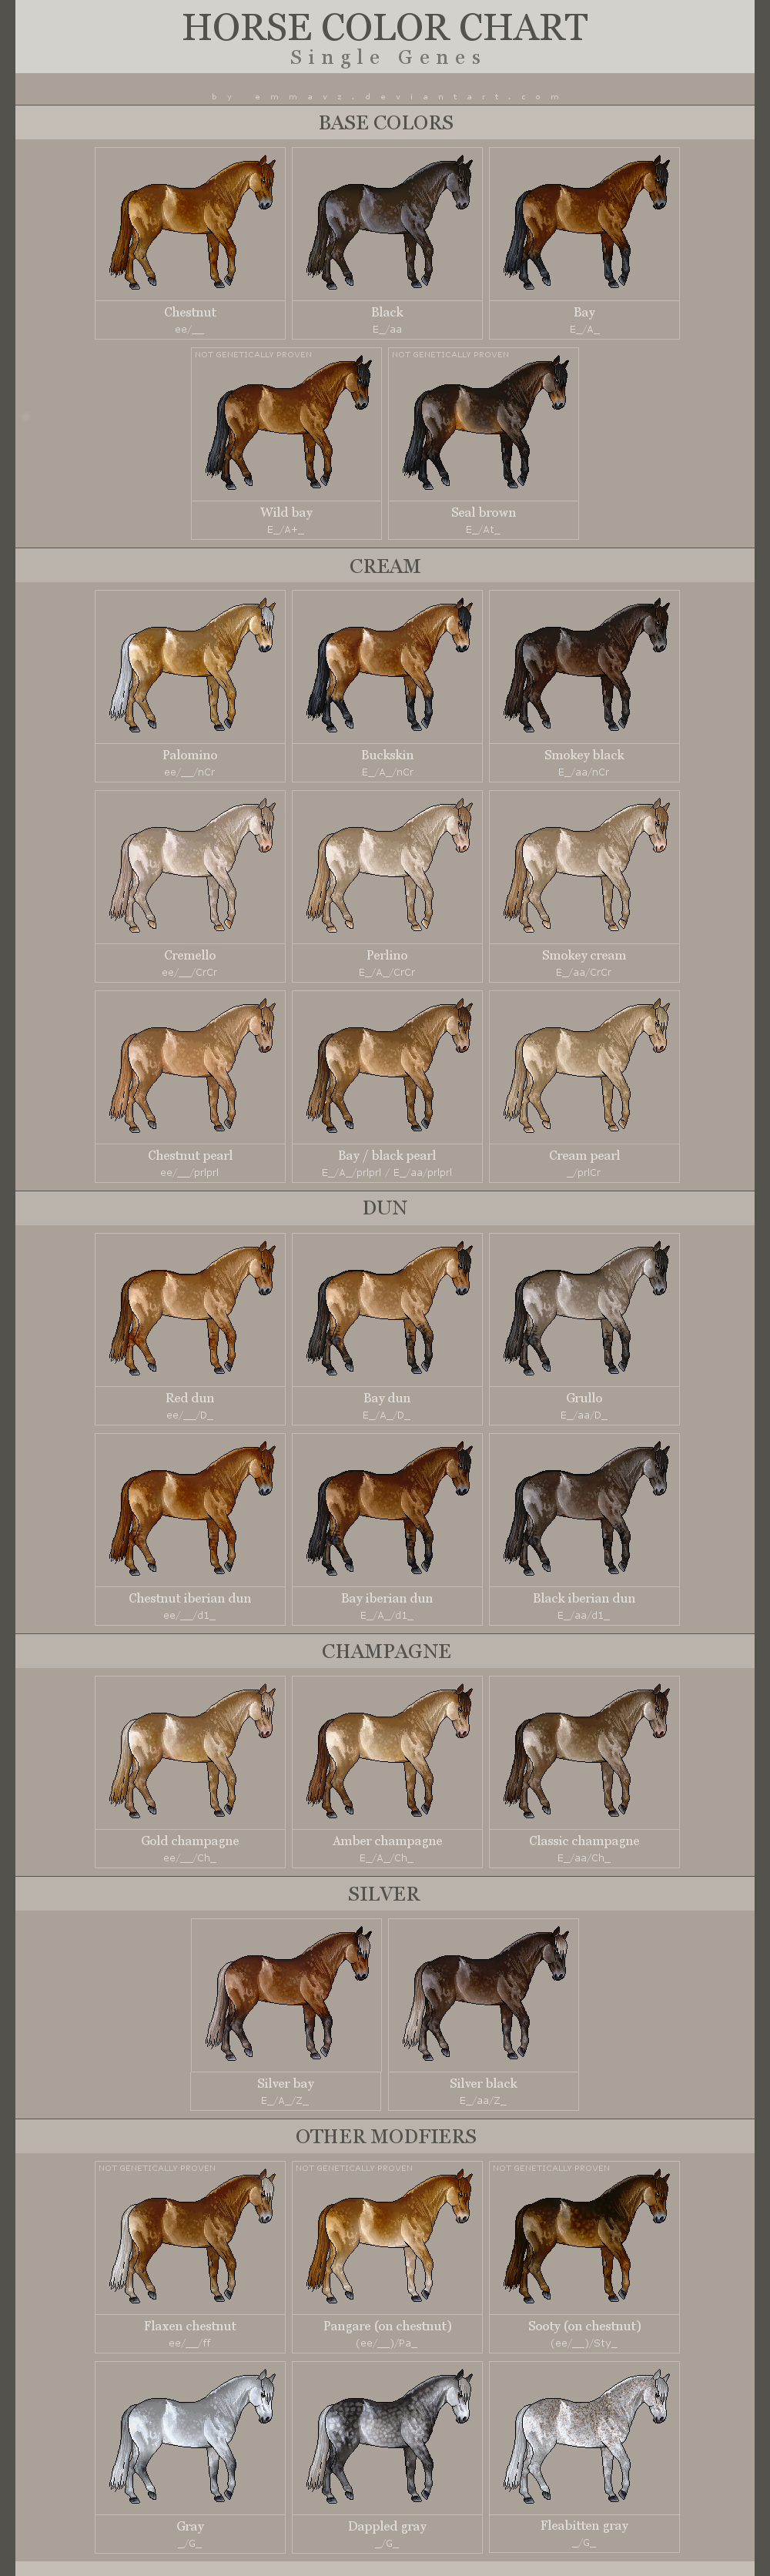 Horse genetics favourites by fortheloveofdeimos on deviantart wouv 188 28 horse color chart single genes updated by emmavz nvjuhfo Images